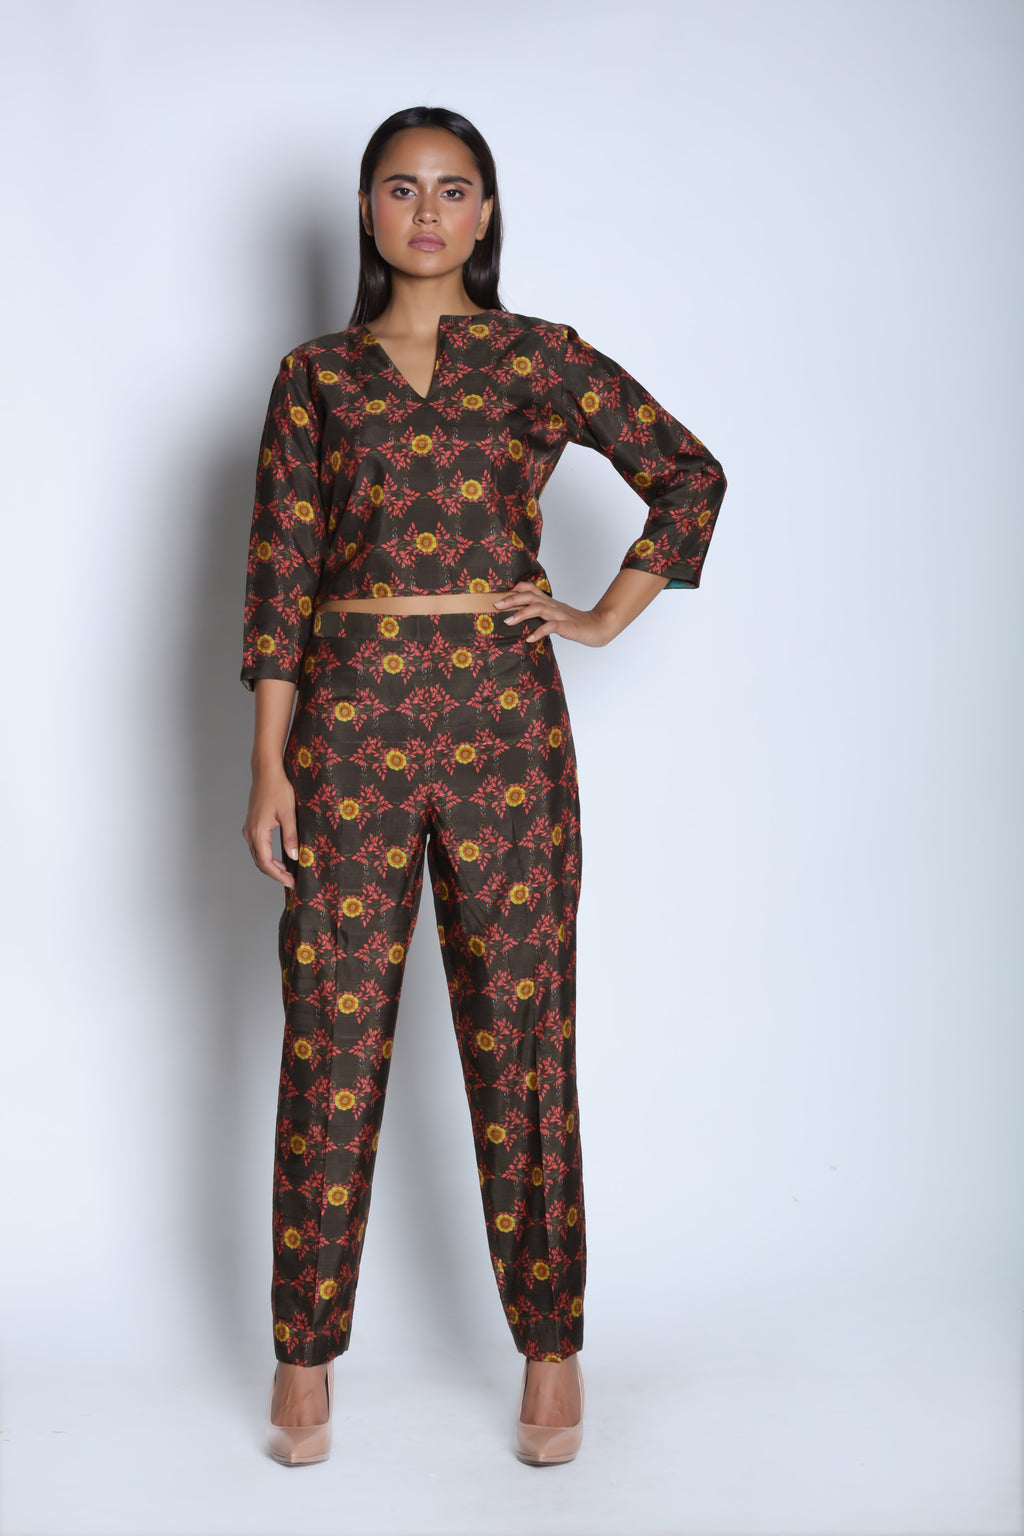 Nautanky - Brown & Yellow Crop Top & Pants - INDIASPOPUP.COM